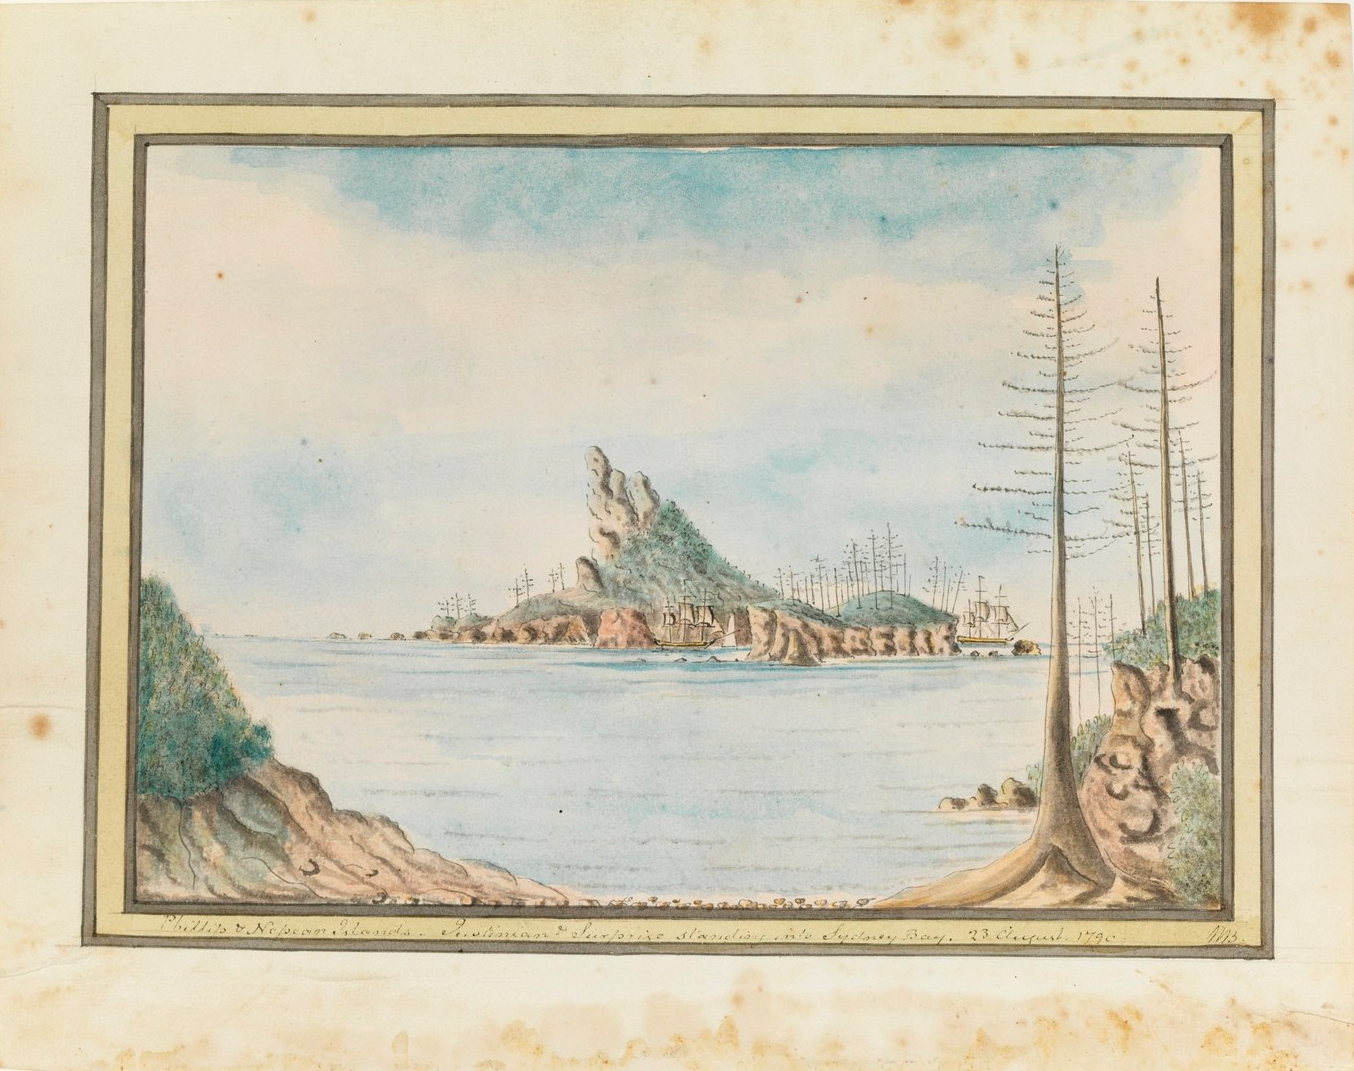 William Bradley, Phillip and Nepean Islands, Justinian, Surprize, Second Fleet, Norfolk Island, Sydney Bay, 1790, Catherine Crowley, D'Arcy Wentworth, William Charles Wentworth, St. John's Cemetery Project, Old Parramattans